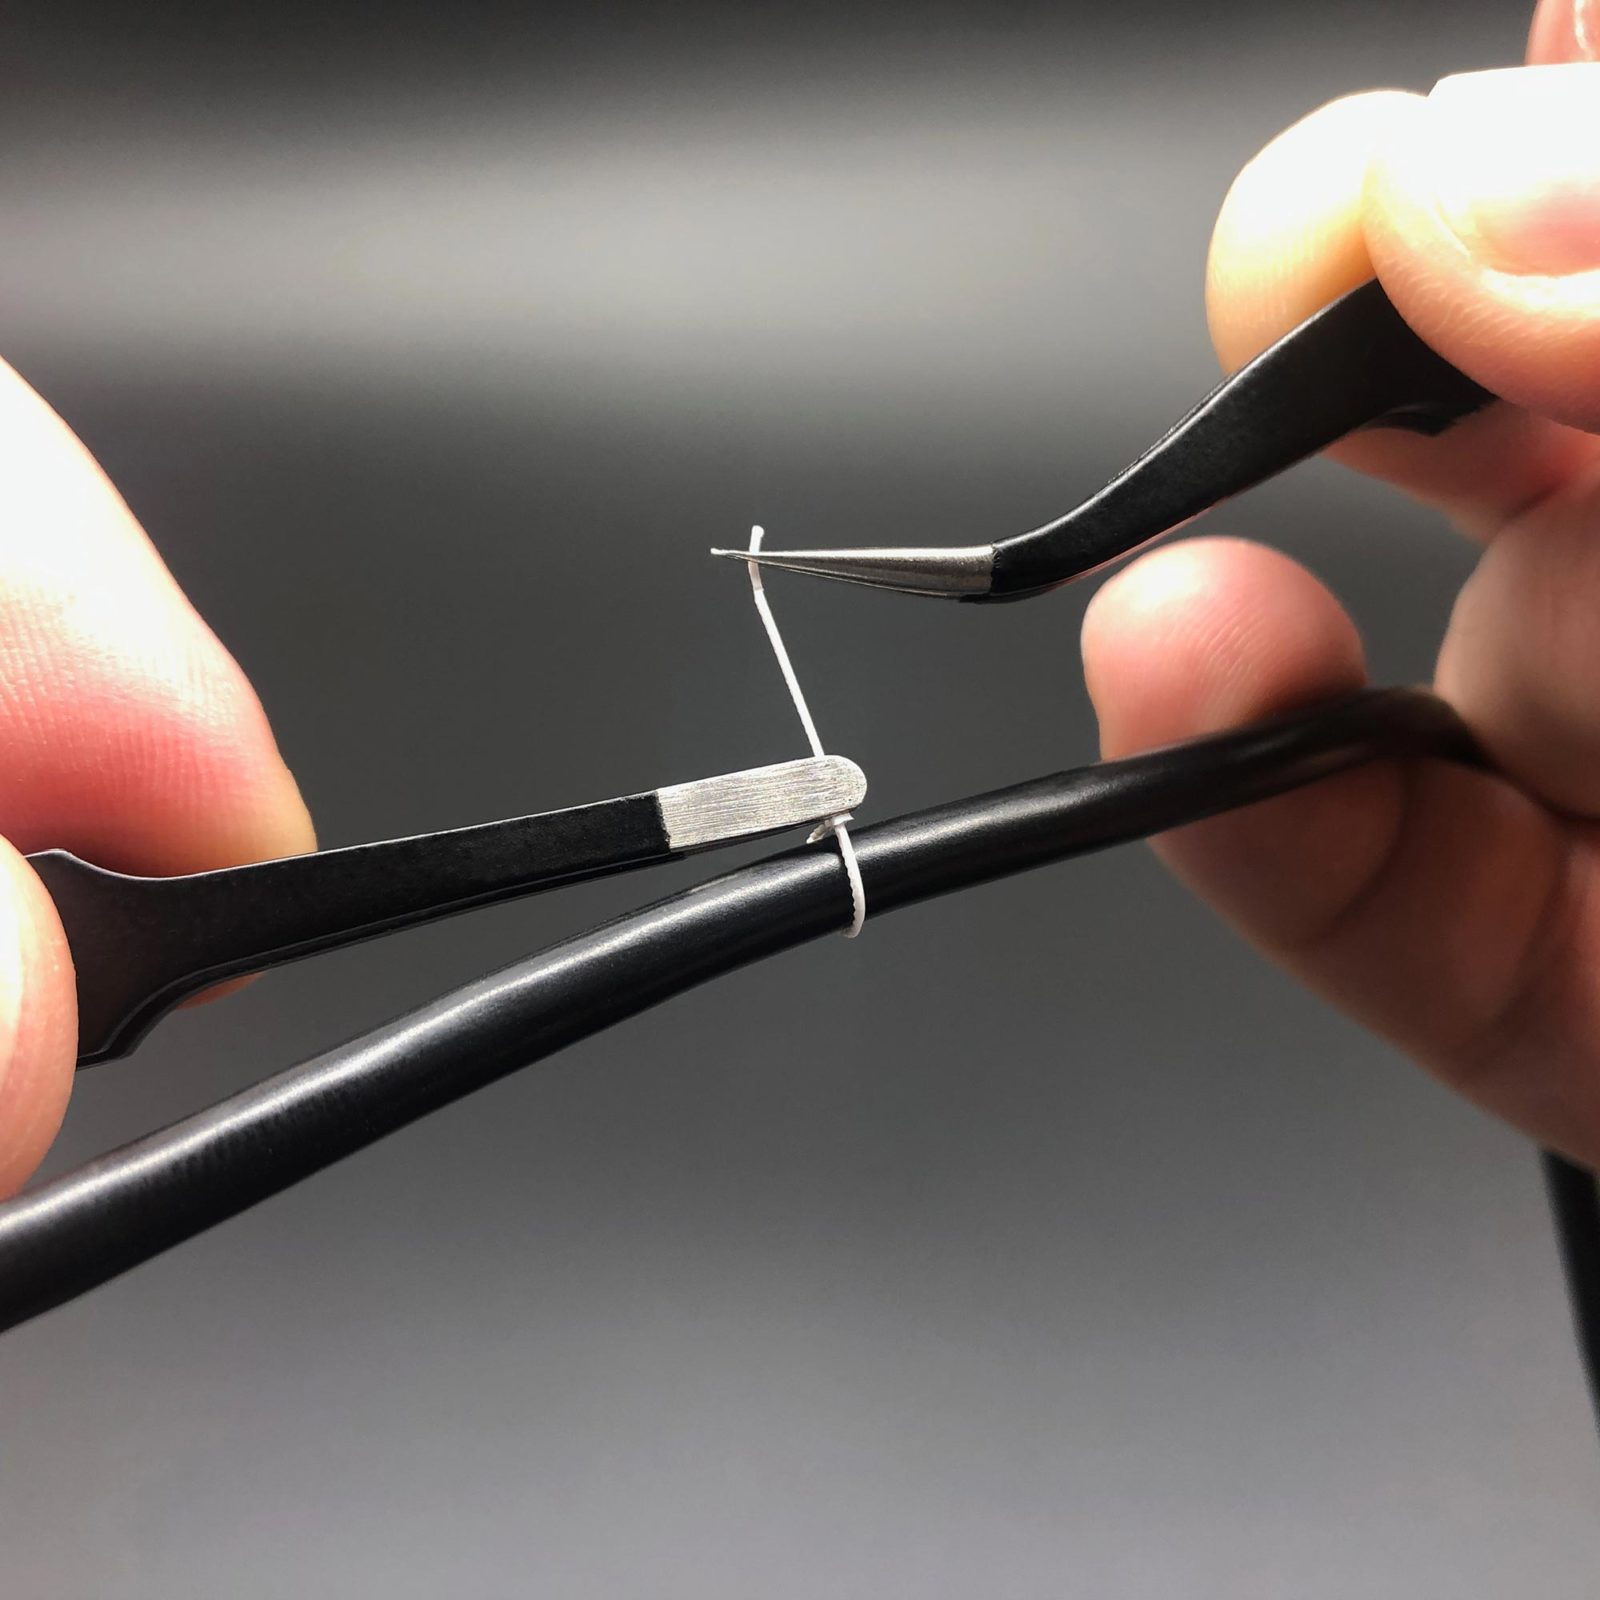 Fastening Mini Cable Ties mod